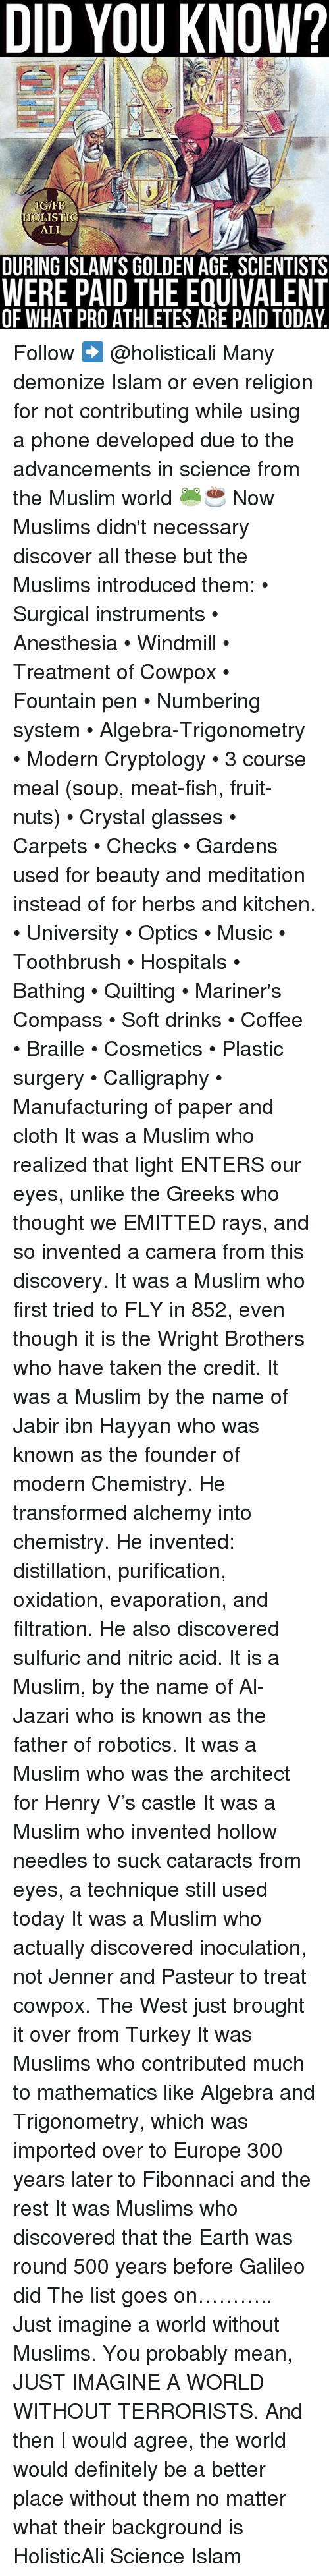 golden age: DID YOU KNOW?  IG/FB  HOLISTIG  ALI  DURING ISLAM'S GOLDEN AGE, SCIENTISTS  WERE PAID THE EQUIVALENT  OF WHAT PROATHLETES ARE PAID TODAY. Follow ➡️ @holisticali Many demonize Islam or even religion for not contributing while using a phone developed due to the advancements in science from the Muslim world 🐸☕️ Now Muslims didn't necessary discover all these but the Muslims introduced them: • Surgical instruments • Anesthesia • Windmill • Treatment of Cowpox • Fountain pen • Numbering system • Algebra-Trigonometry • Modern Cryptology • 3 course meal (soup, meat-fish, fruit-nuts) • Crystal glasses • Carpets • Checks • Gardens used for beauty and meditation instead of for herbs and kitchen. • University • Optics • Music • Toothbrush • Hospitals • Bathing • Quilting • Mariner's Compass • Soft drinks • Coffee • Braille • Cosmetics • Plastic surgery • Calligraphy • Manufacturing of paper and cloth It was a Muslim who realized that light ENTERS our eyes, unlike the Greeks who thought we EMITTED rays, and so invented a camera from this discovery. It was a Muslim who first tried to FLY in 852, even though it is the Wright Brothers who have taken the credit. It was a Muslim by the name of Jabir ibn Hayyan who was known as the founder of modern Chemistry. He transformed alchemy into chemistry. He invented: distillation, purification, oxidation, evaporation, and filtration. He also discovered sulfuric and nitric acid. It is a Muslim, by the name of Al-Jazari who is known as the father of robotics. It was a Muslim who was the architect for Henry V's castle It was a Muslim who invented hollow needles to suck cataracts from eyes, a technique still used today It was a Muslim who actually discovered inoculation, not Jenner and Pasteur to treat cowpox. The West just brought it over from Turkey It was Muslims who contributed much to mathematics like Algebra and Trigonometry, which was imported over to Europe 300 years later to Fibonnaci and the rest It was Muslims who discov